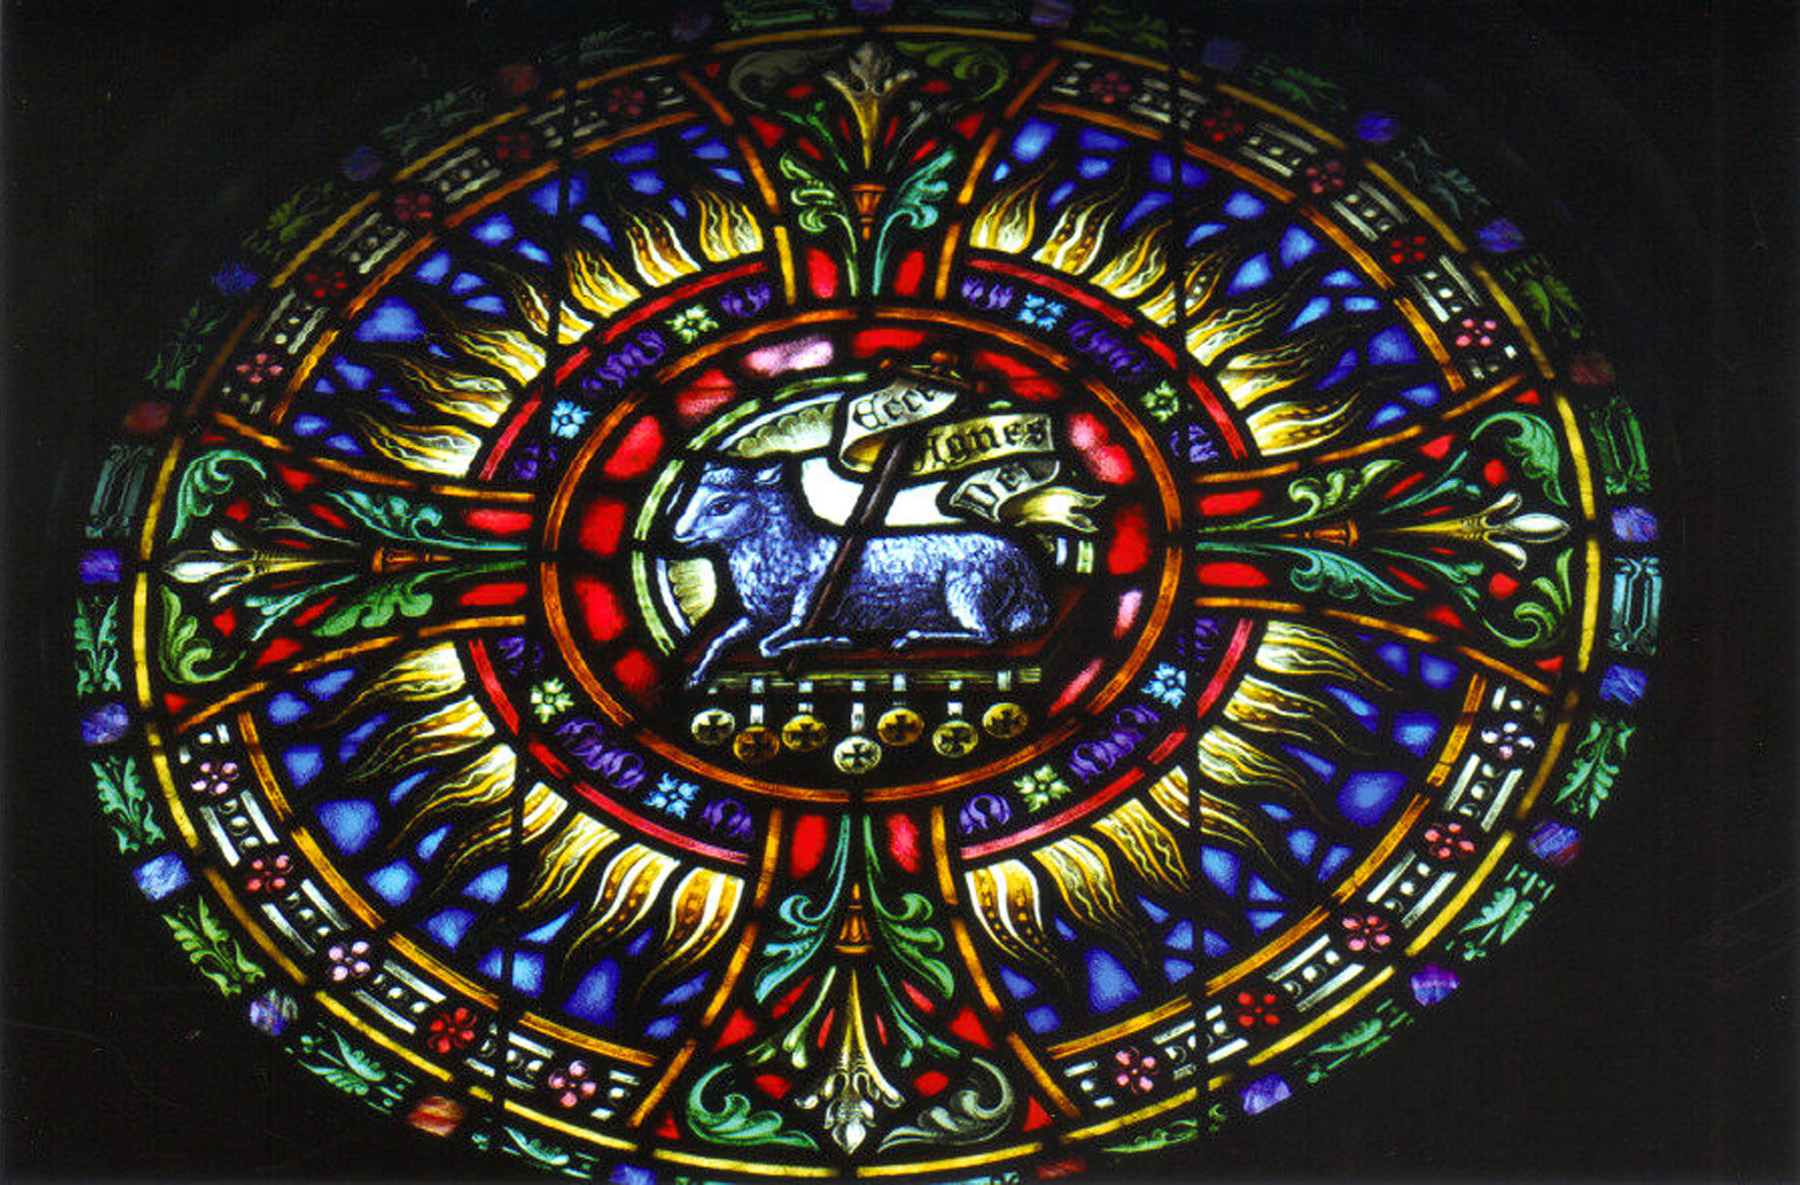 saint gabriel church stained glass window